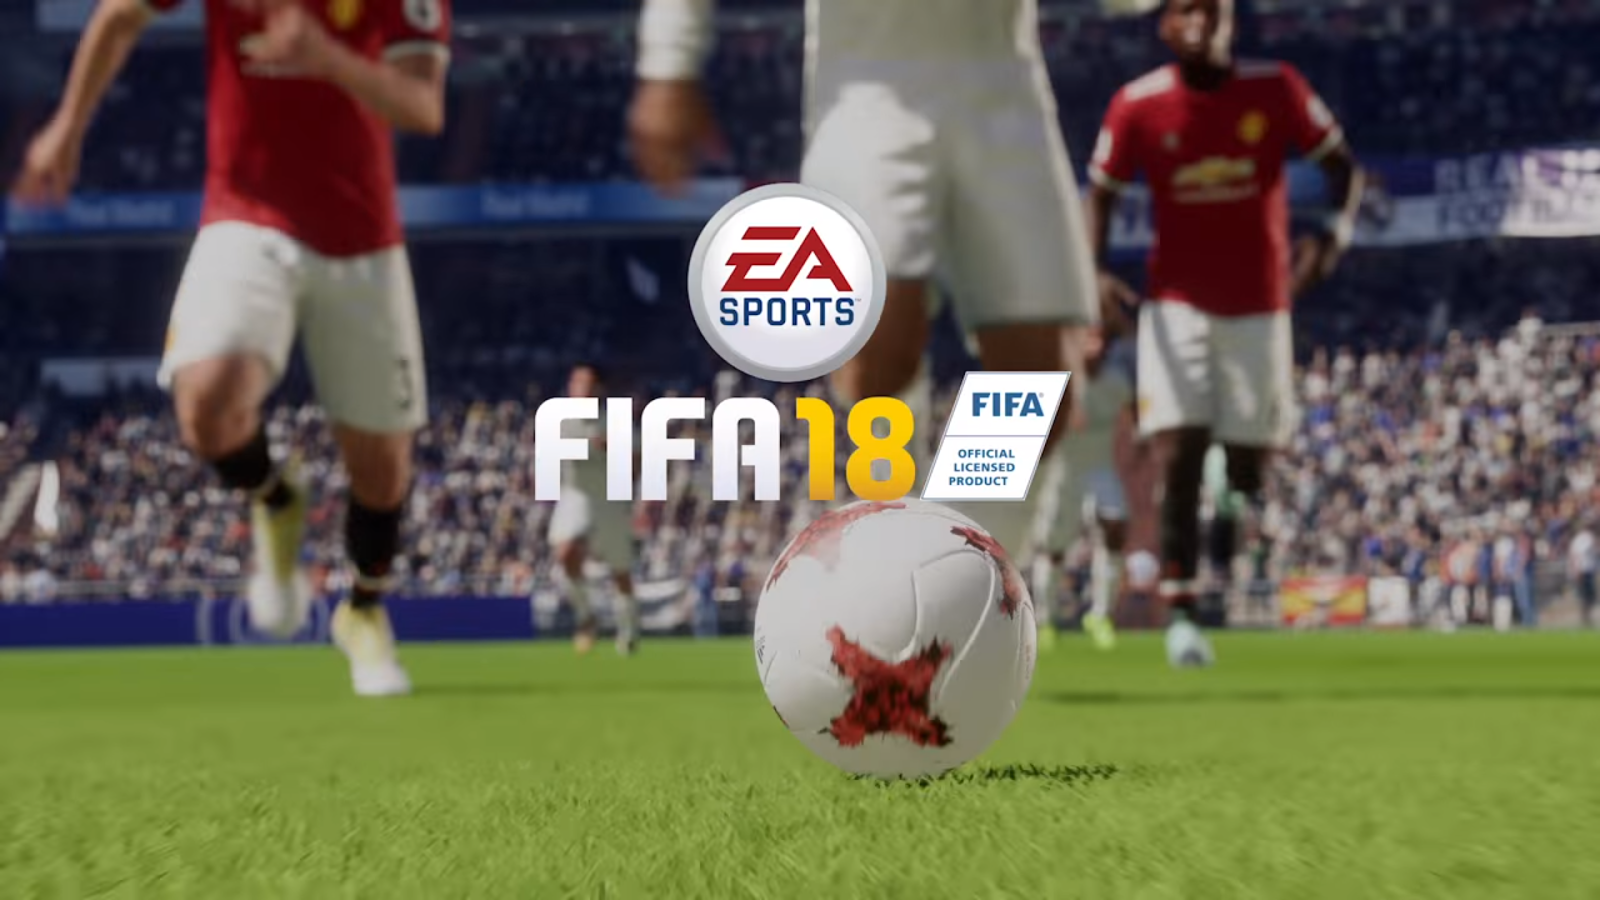 The Worlds Game Ea Sports Fifa 18 Is Available Worldwide Now Nintendo Switch Has Launched On Playstation4 Xbox One Pc Playstation3 And 360 Systems